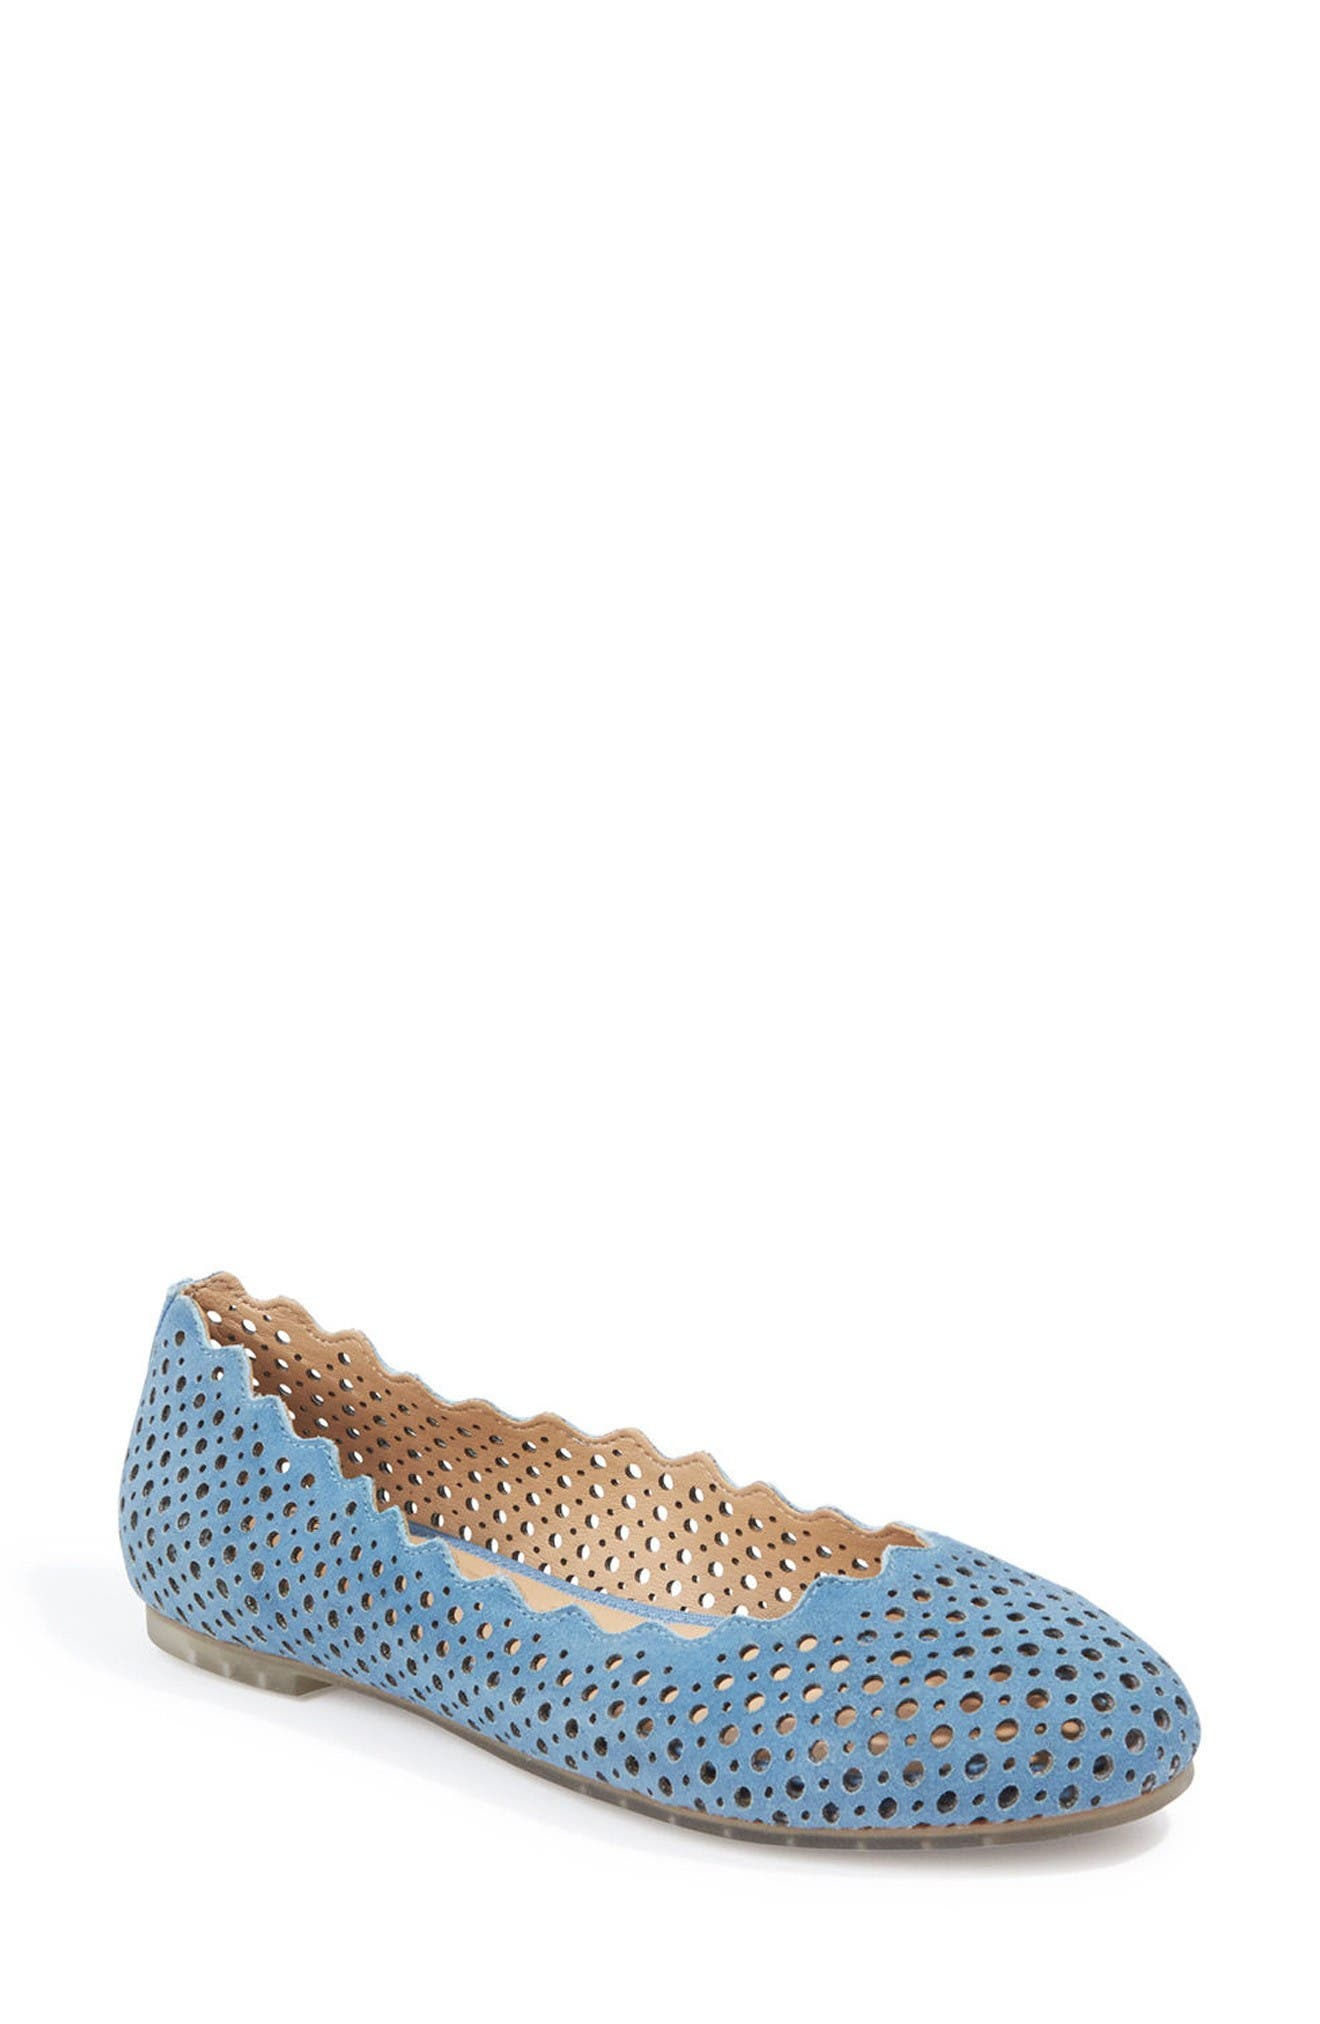 Carlee Scalloped Flat,                             Main thumbnail 1, color,                             Sky Blue Suede